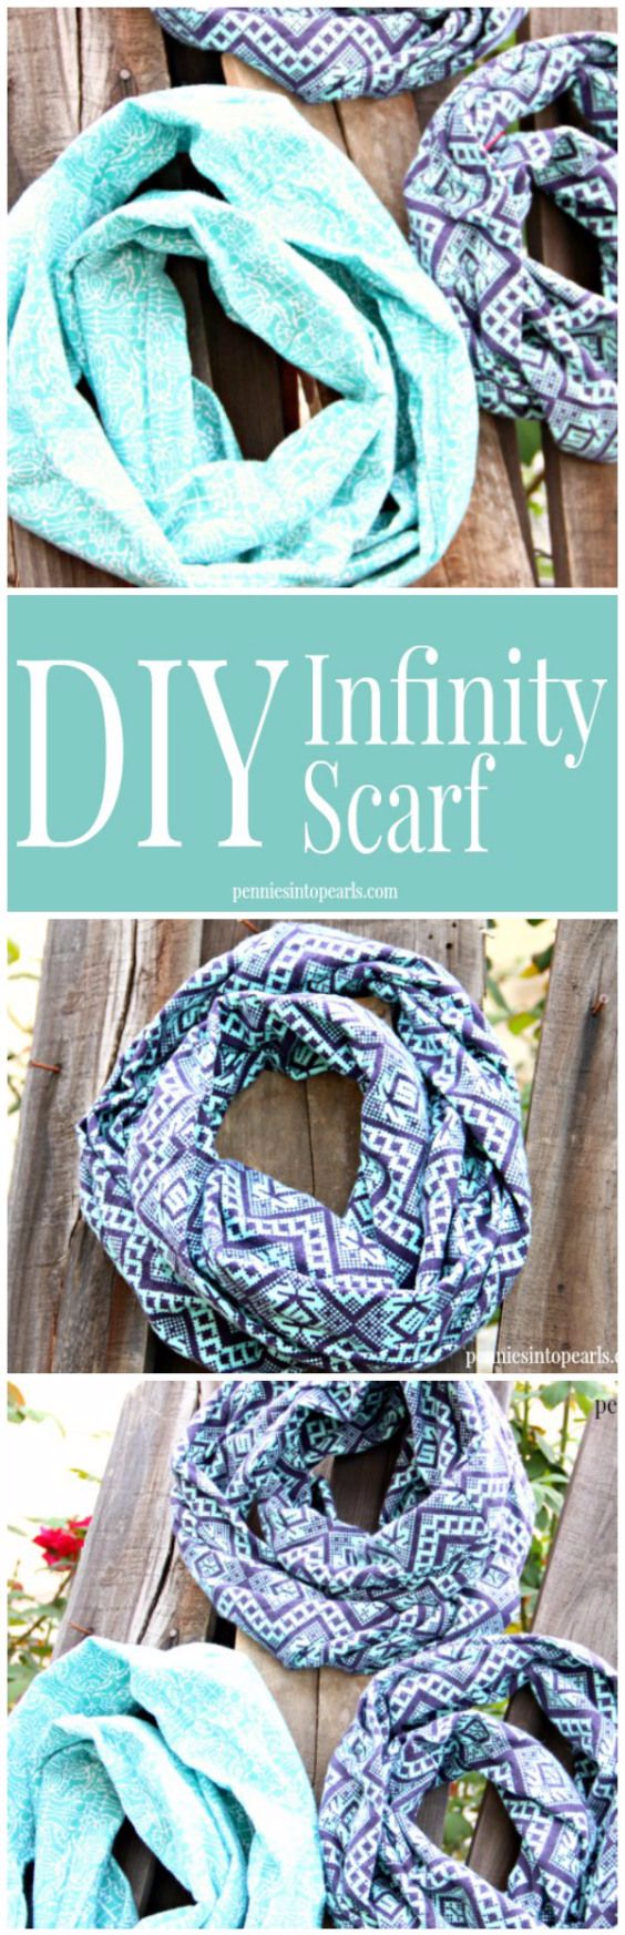 Best Sewing Projects to Make For Girls - DIY Infinity Scarf - Creative Sewing Tutorials for Baby Kids and Teens - Free Patterns and Step by Step Tutorials for Dresses, Blouses, Shirts, Pants, Hats and Bags #sewing #sewingideas